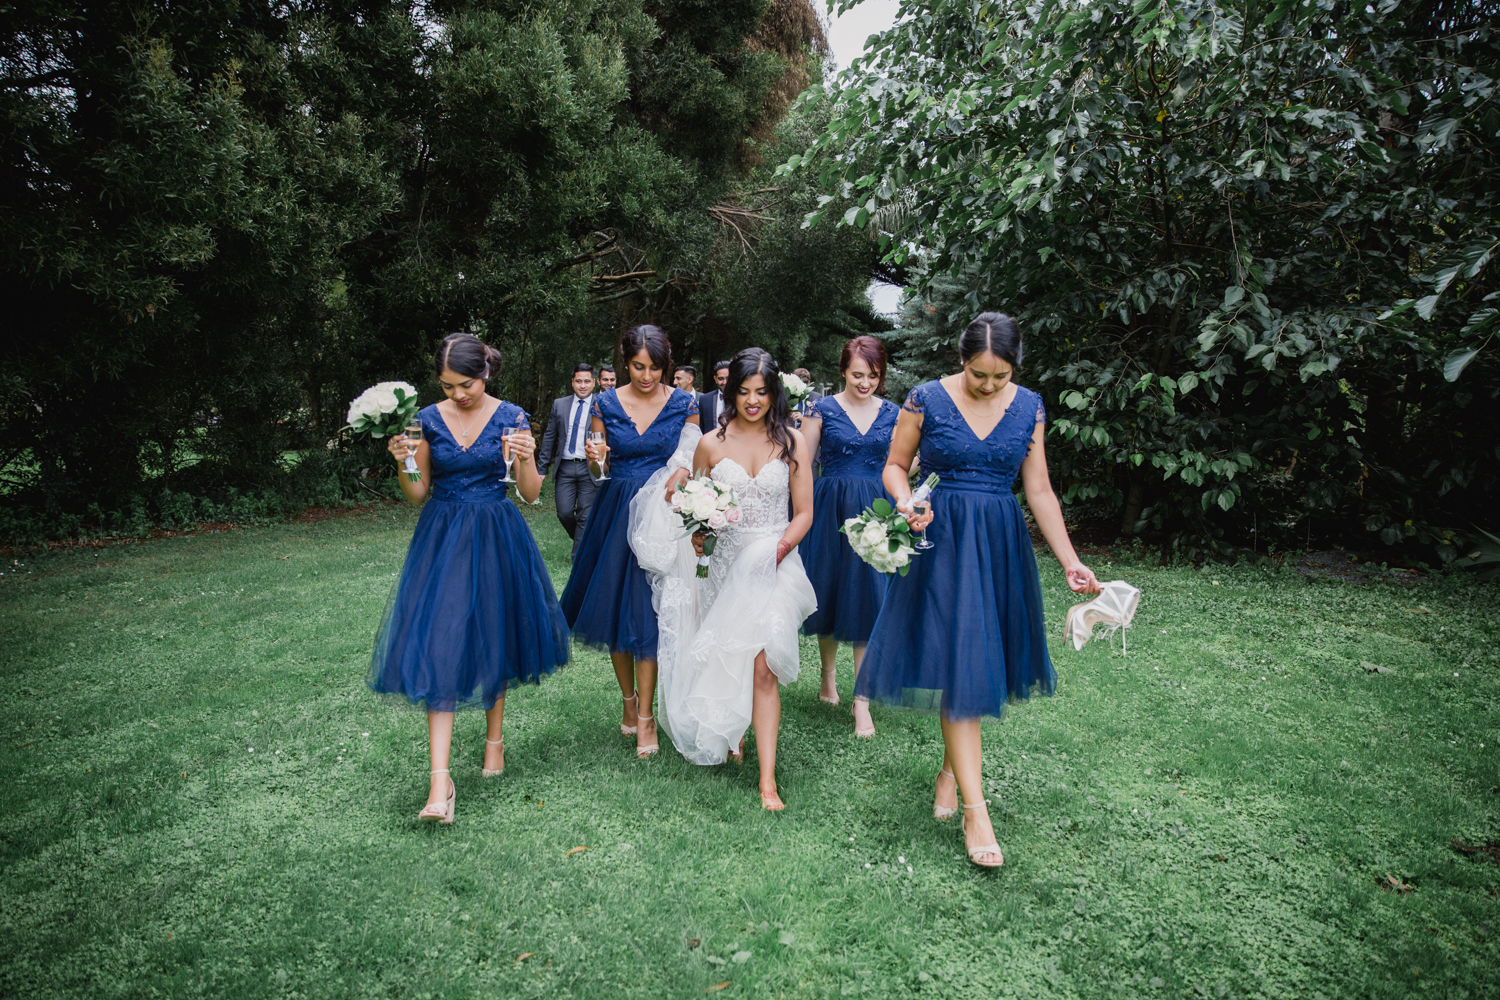 Bride and groom and their bridal party. This image was taken by Mala Photography, an Auckland based wedding photographer. The wedding was at Markovina Vineyard Estate In Kumeu, Auckland